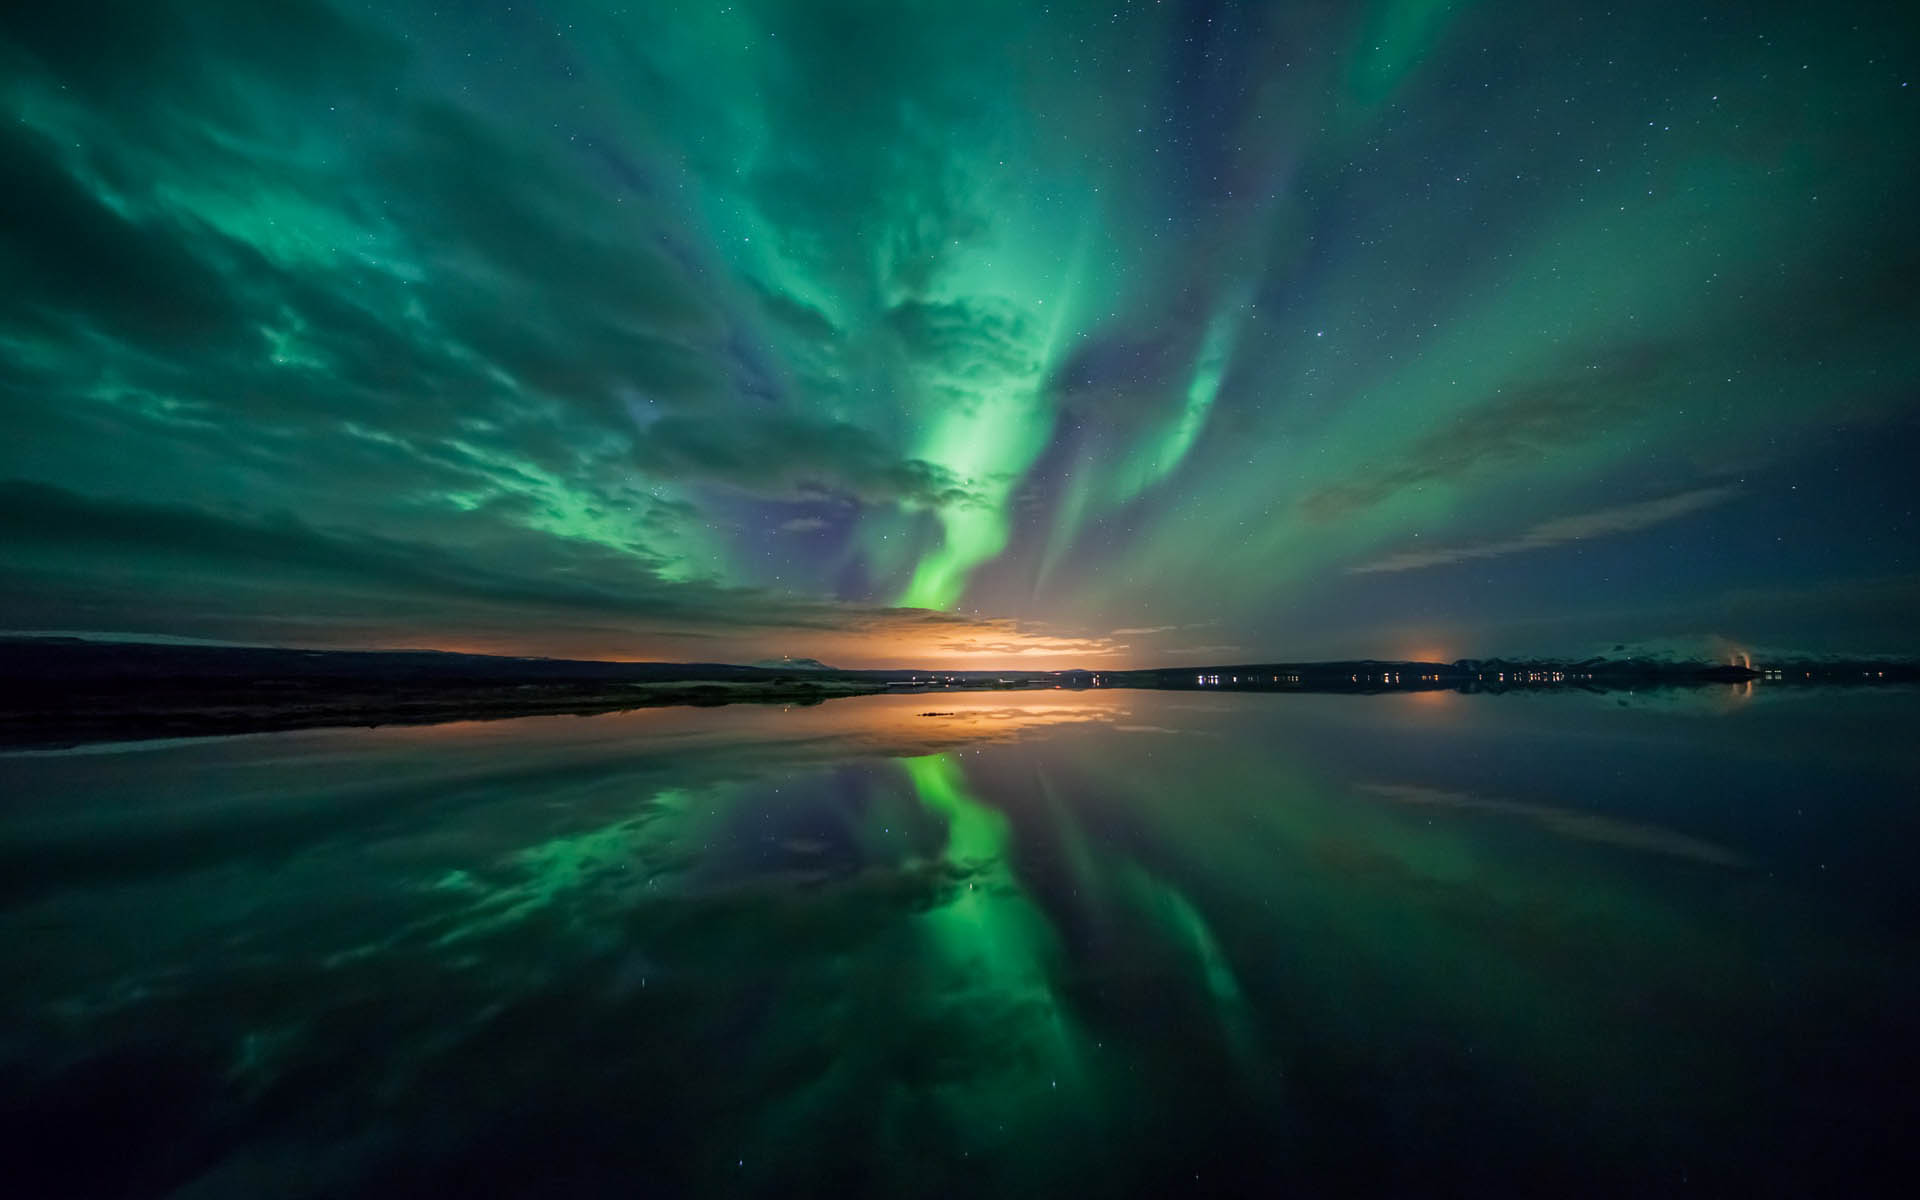 Aurora Borealis High Definition HD Wallpapers 2015   All HD Wallpapers 1920x1200